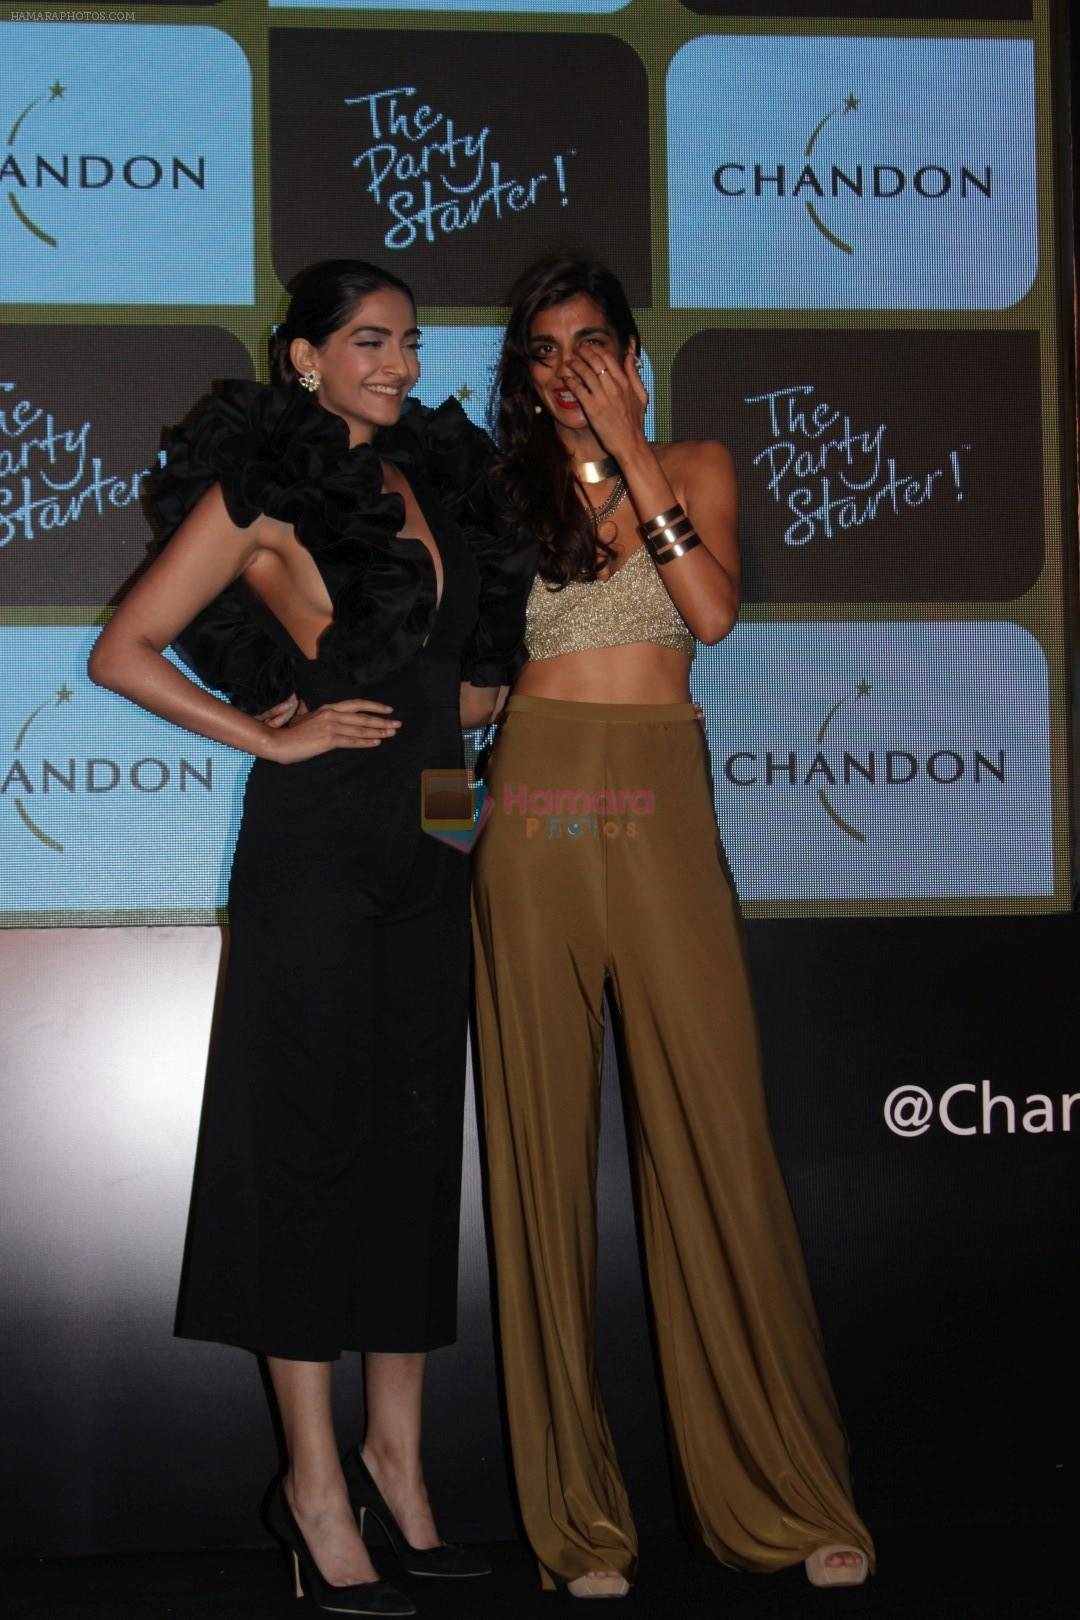 Sonam Kapoor at Chandon's Party Starter Song with singer Anushka on 2nd March 2017